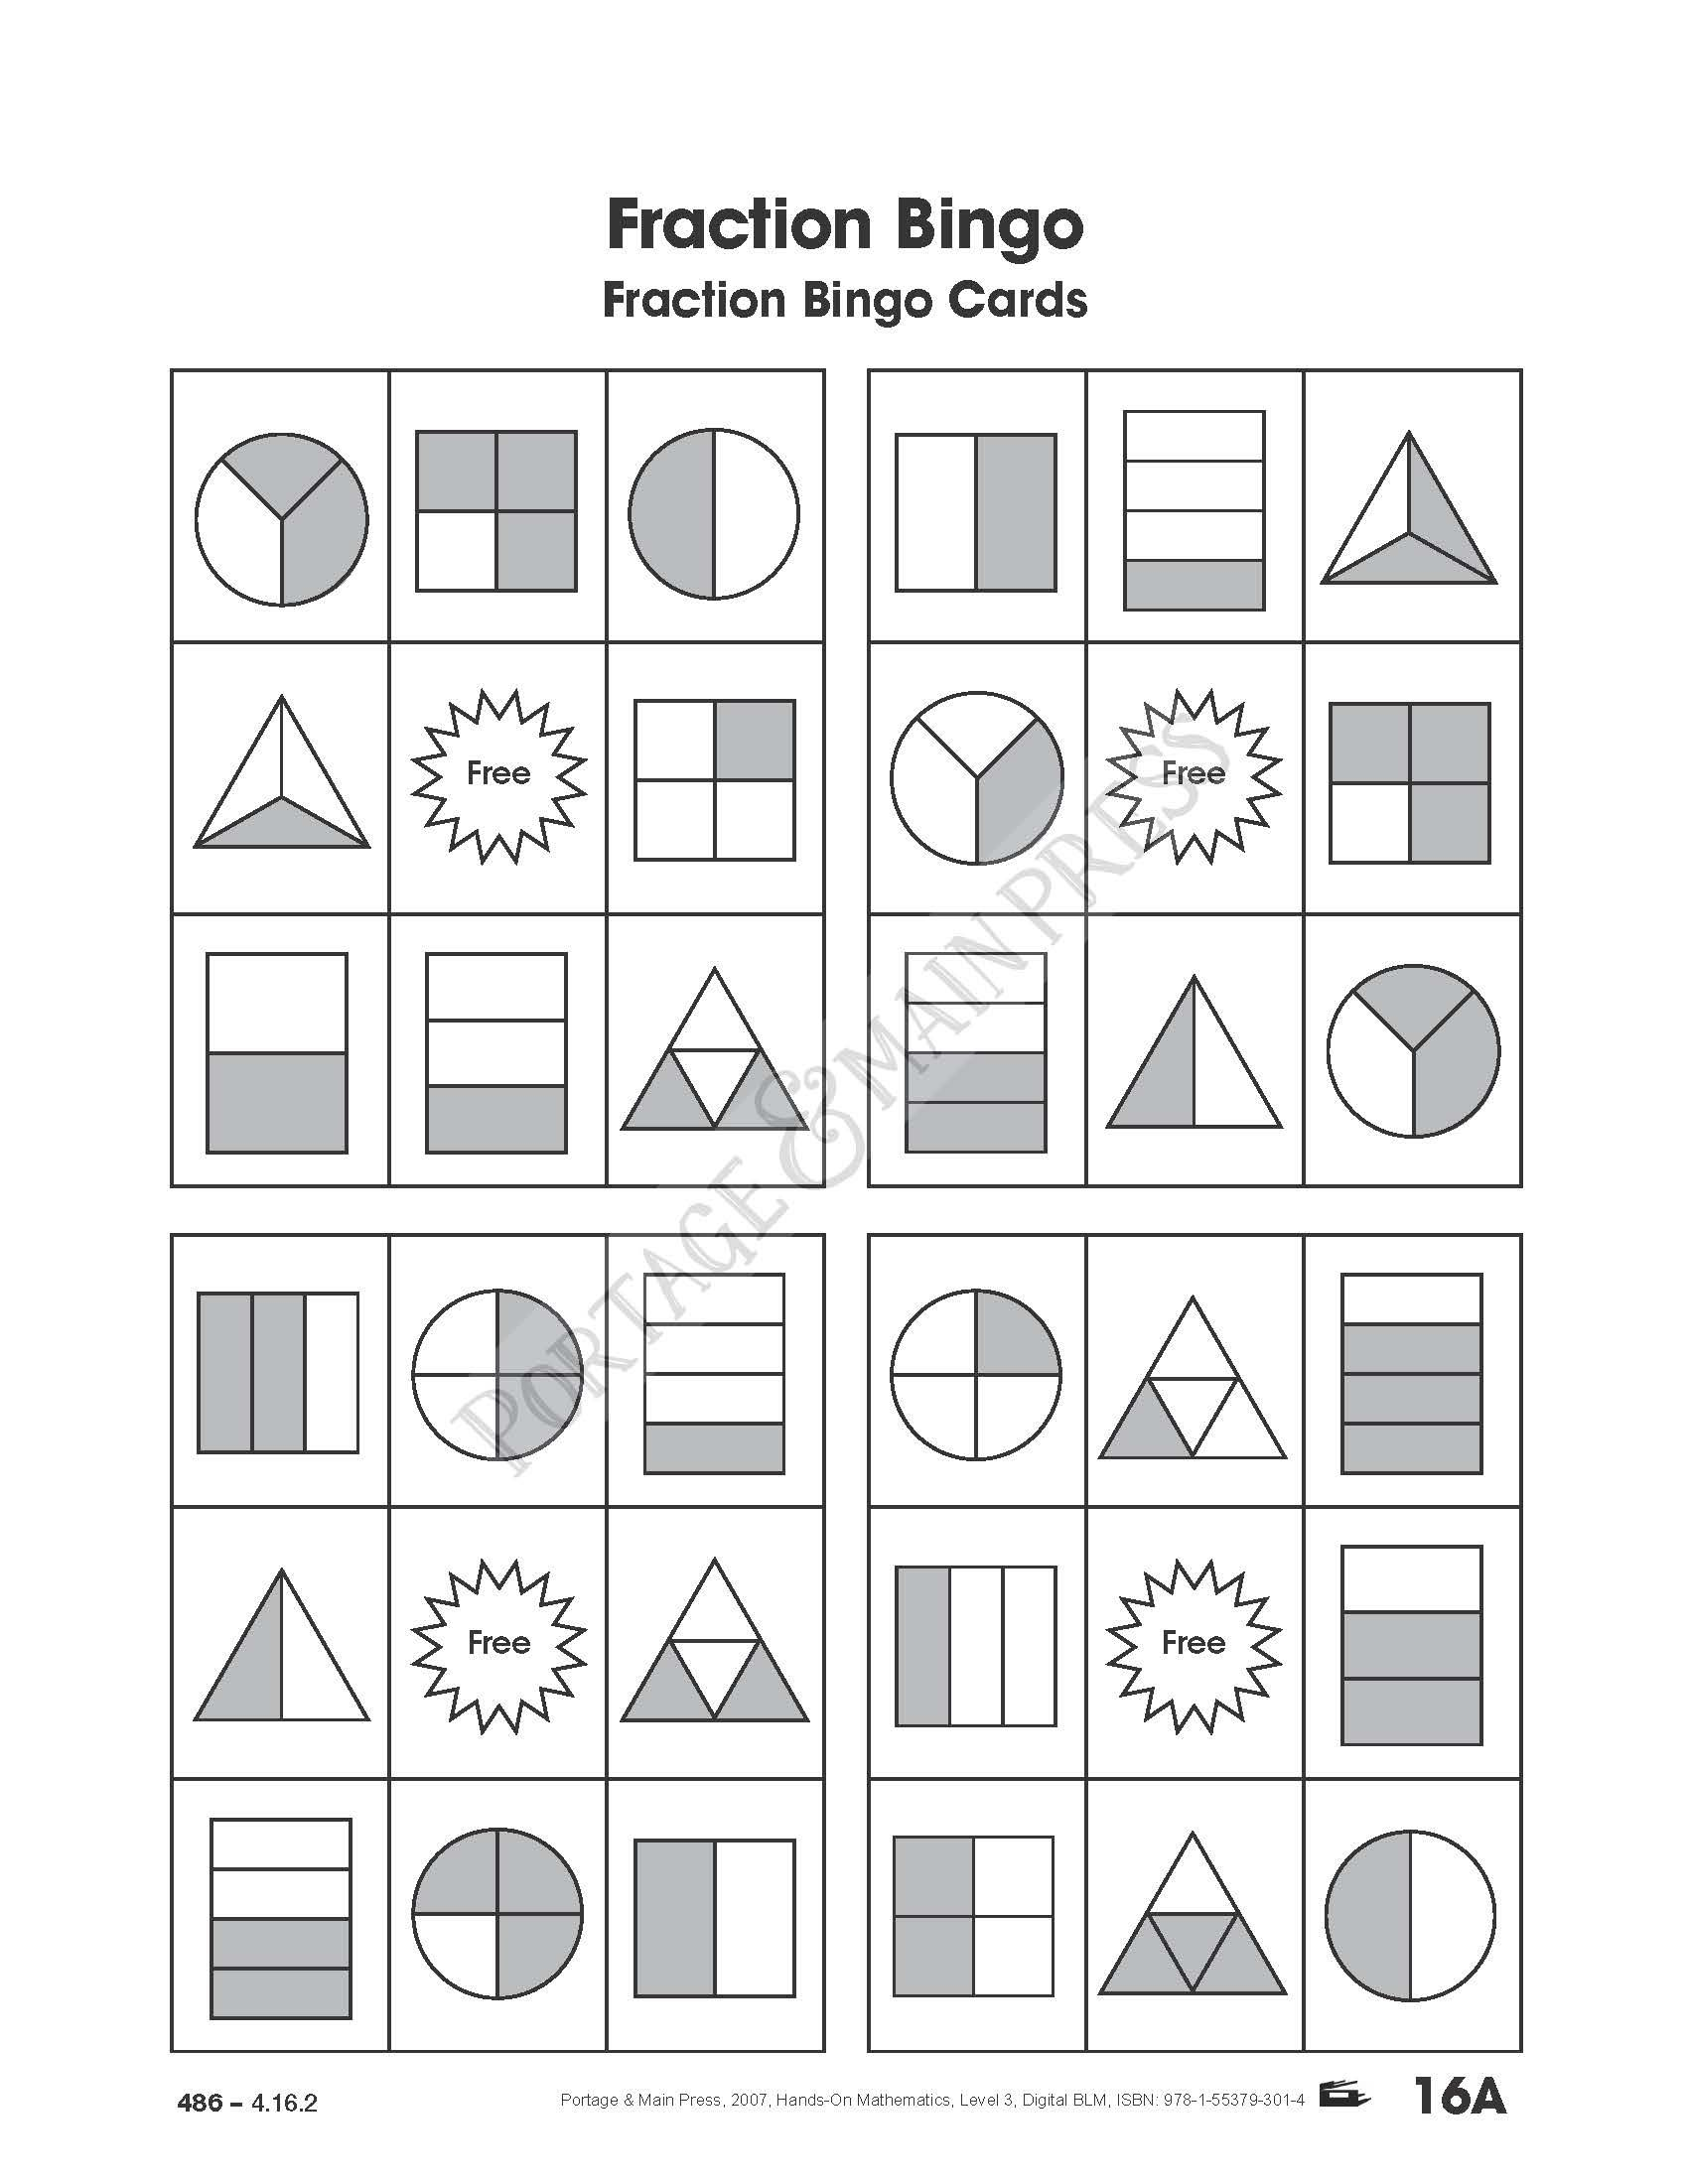 awesome math game, students will love! grade 3 math - fraction bingo